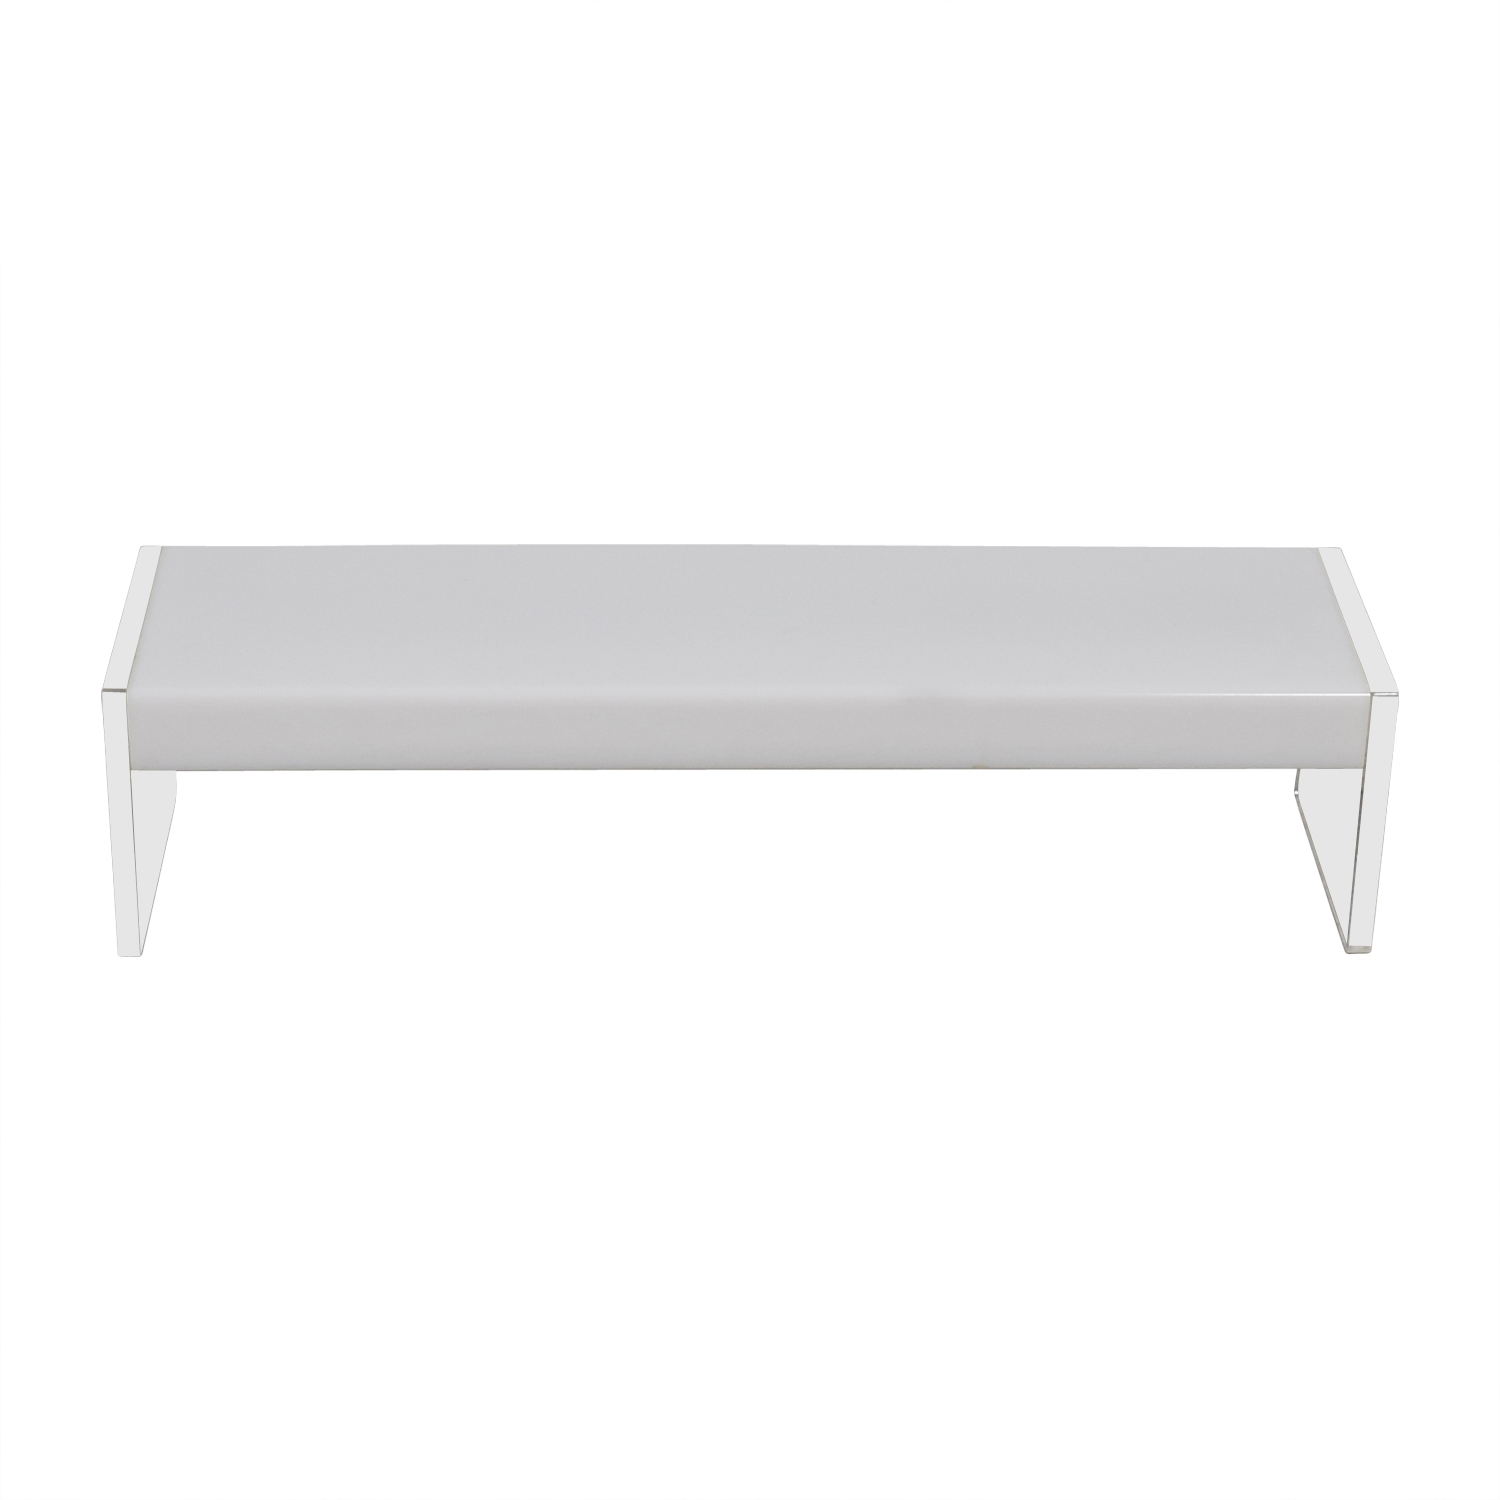 Light Up White & Ghost Coffee Table for sale